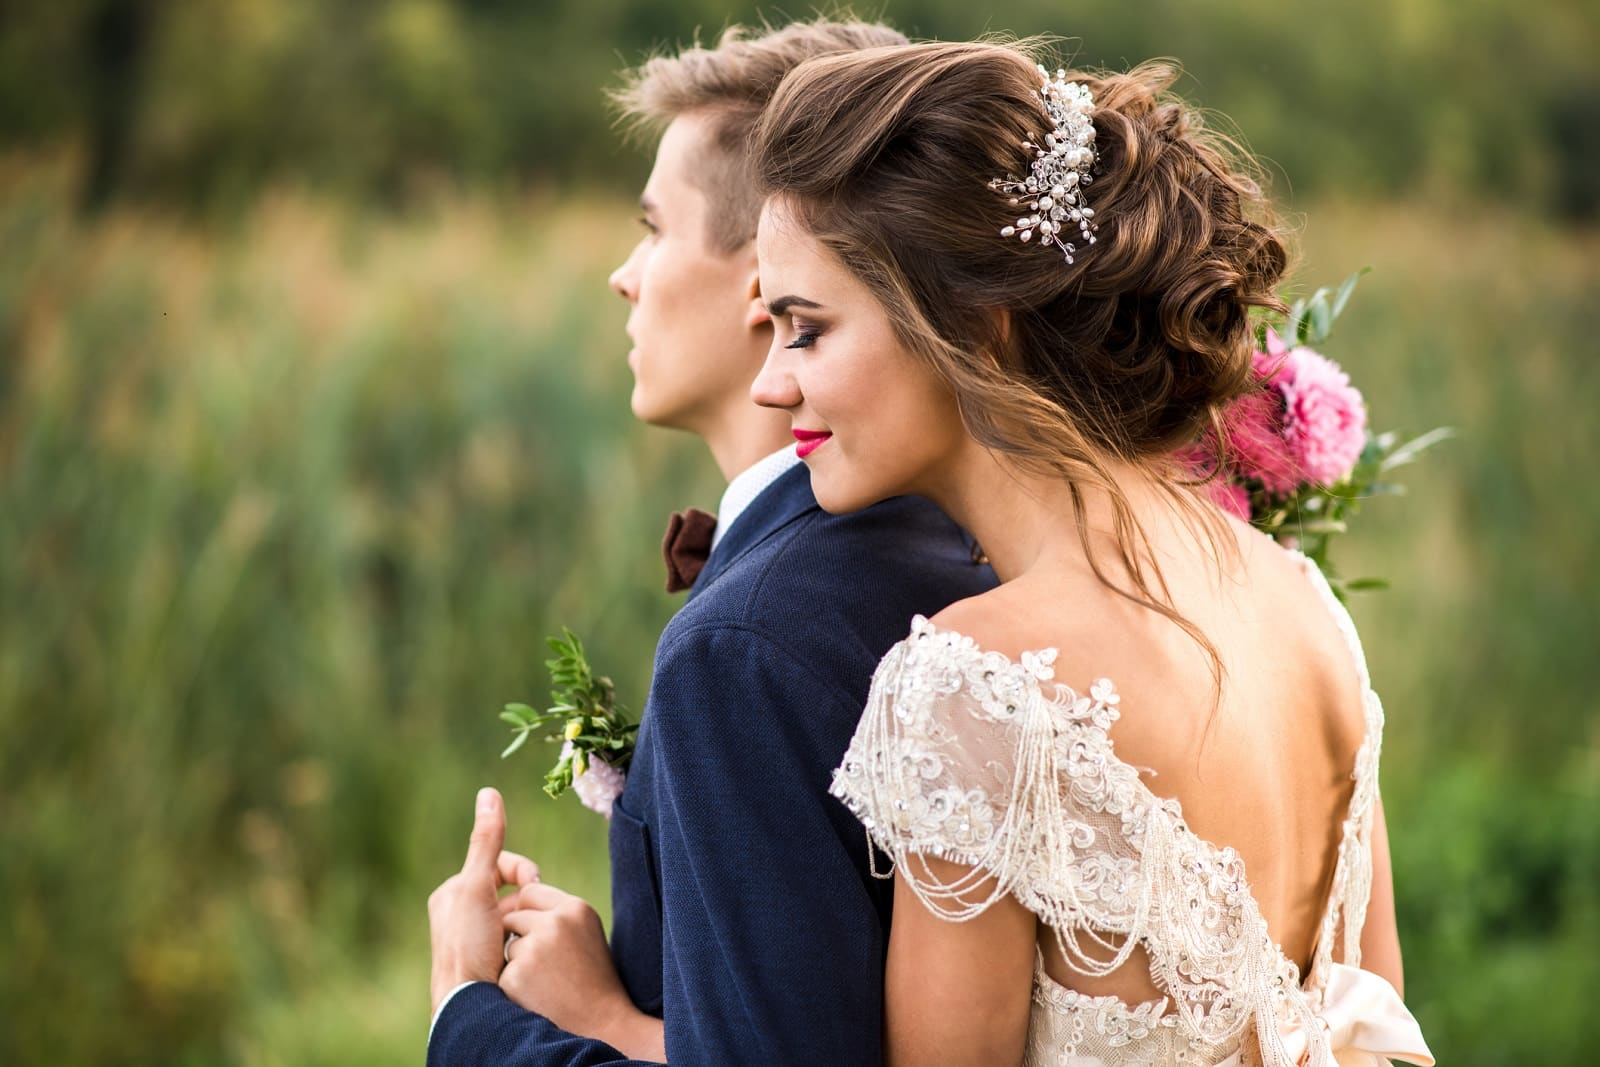 How to choose your bridal hairstyle? Here are some tips and suggestions.